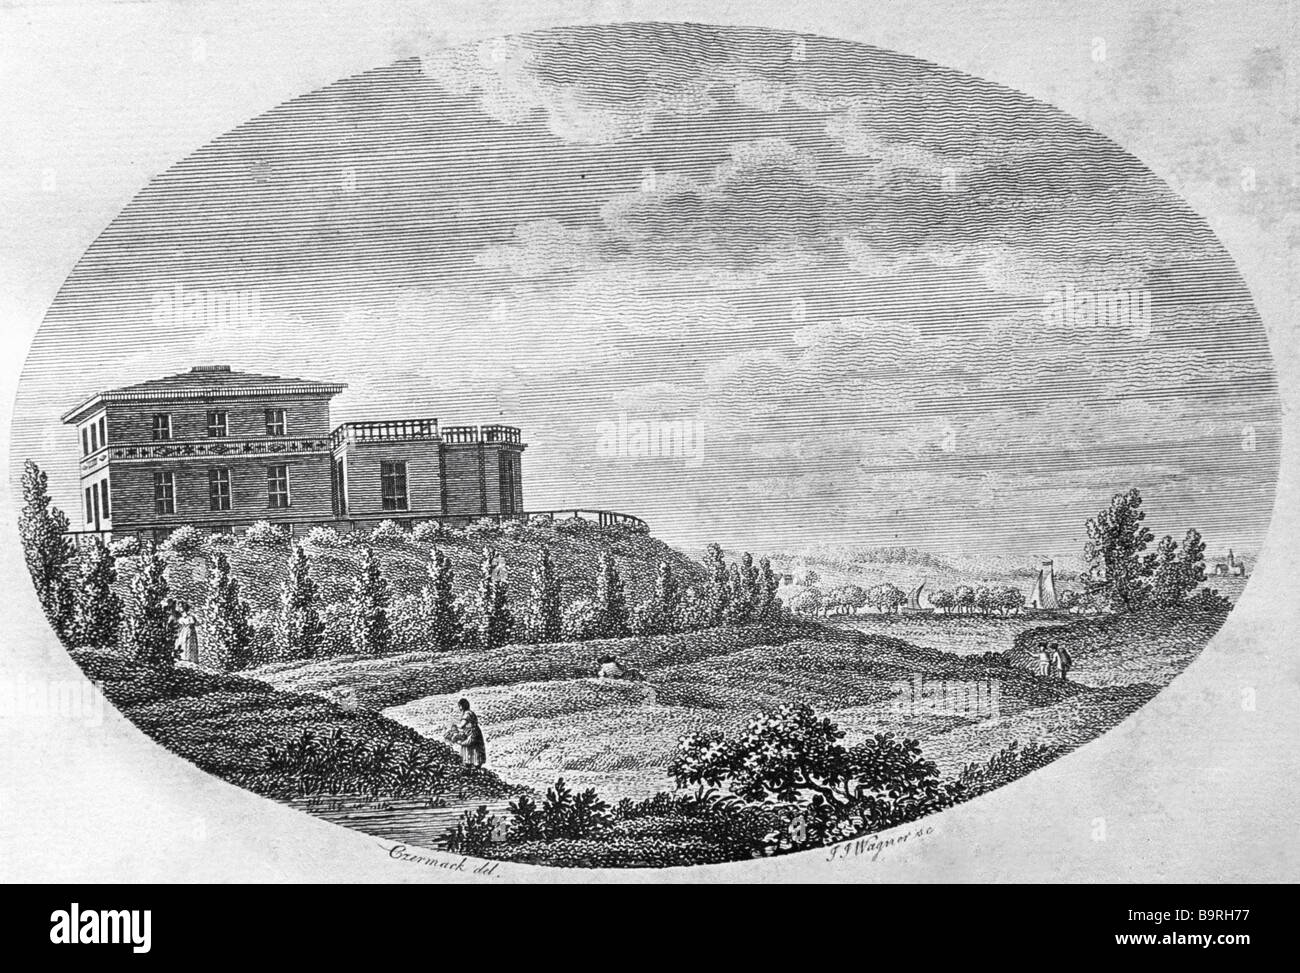 Engraving depicting the building of the Koenigsberg observatory Sternberg Astronomical Institute library Reproduction - Stock Image